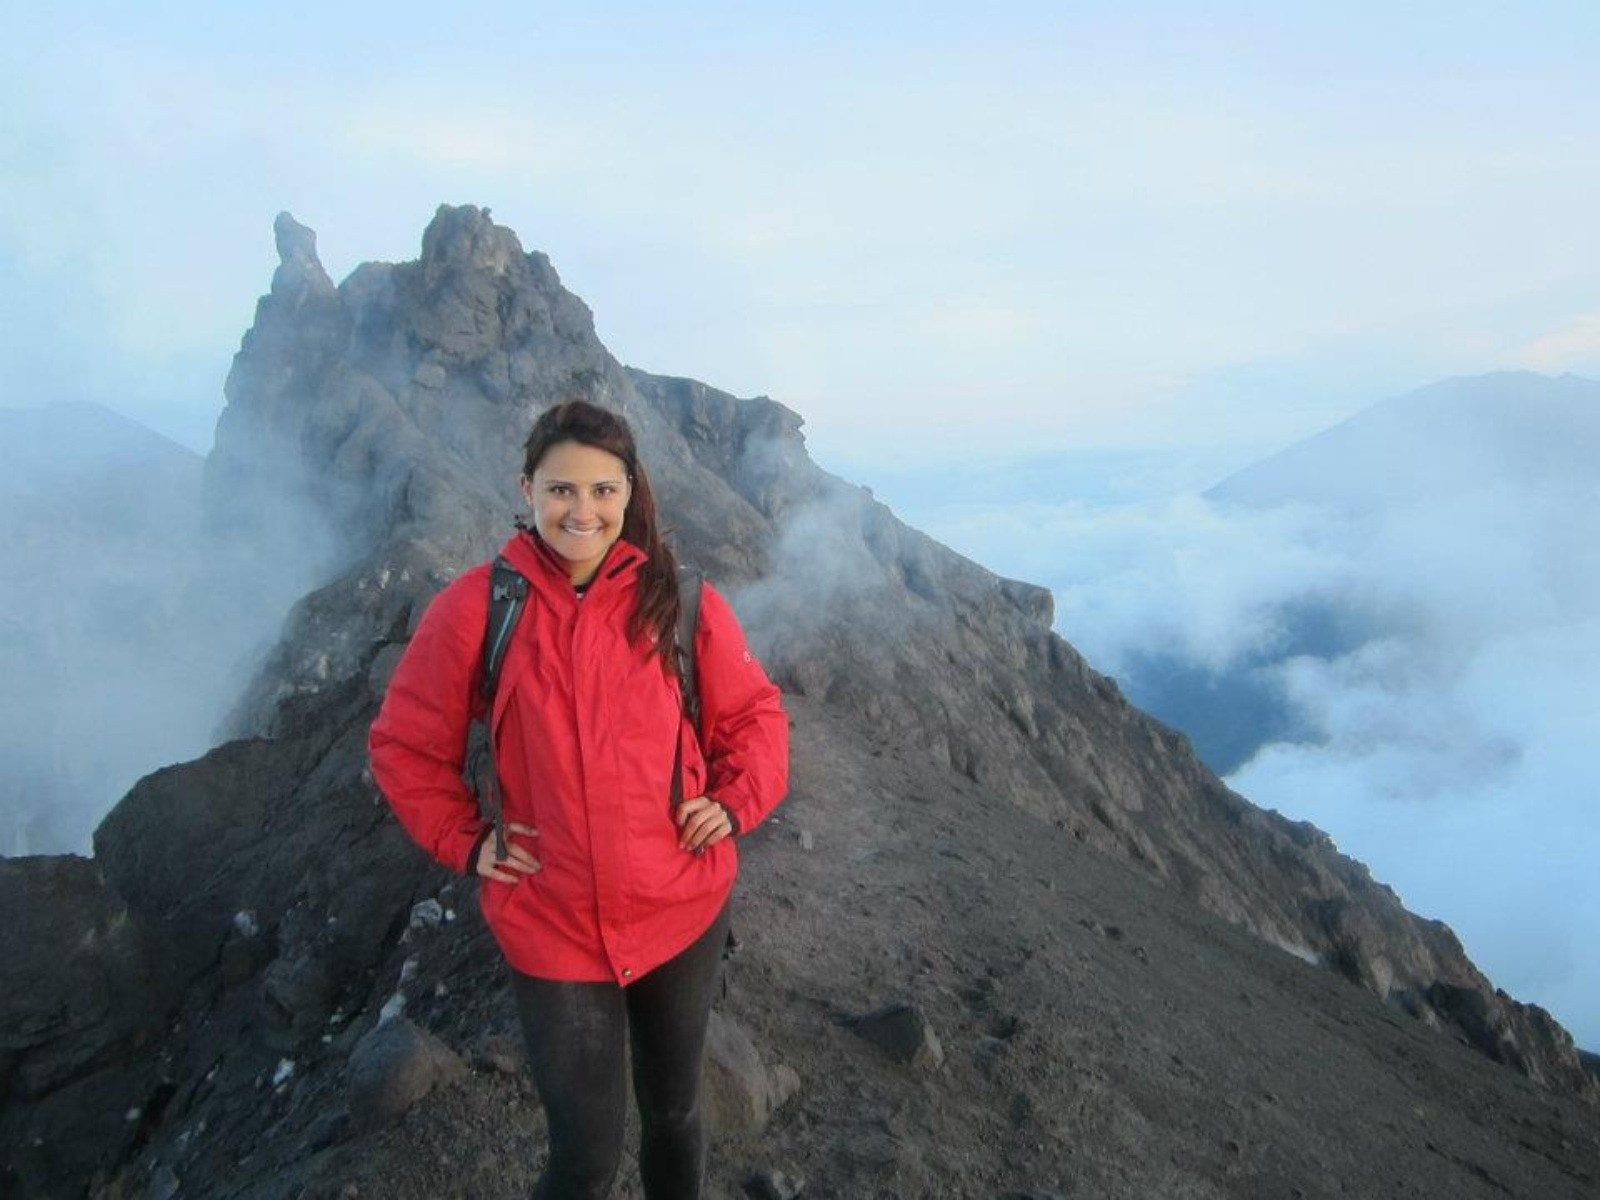 Climbing an active volcano in Indonesia